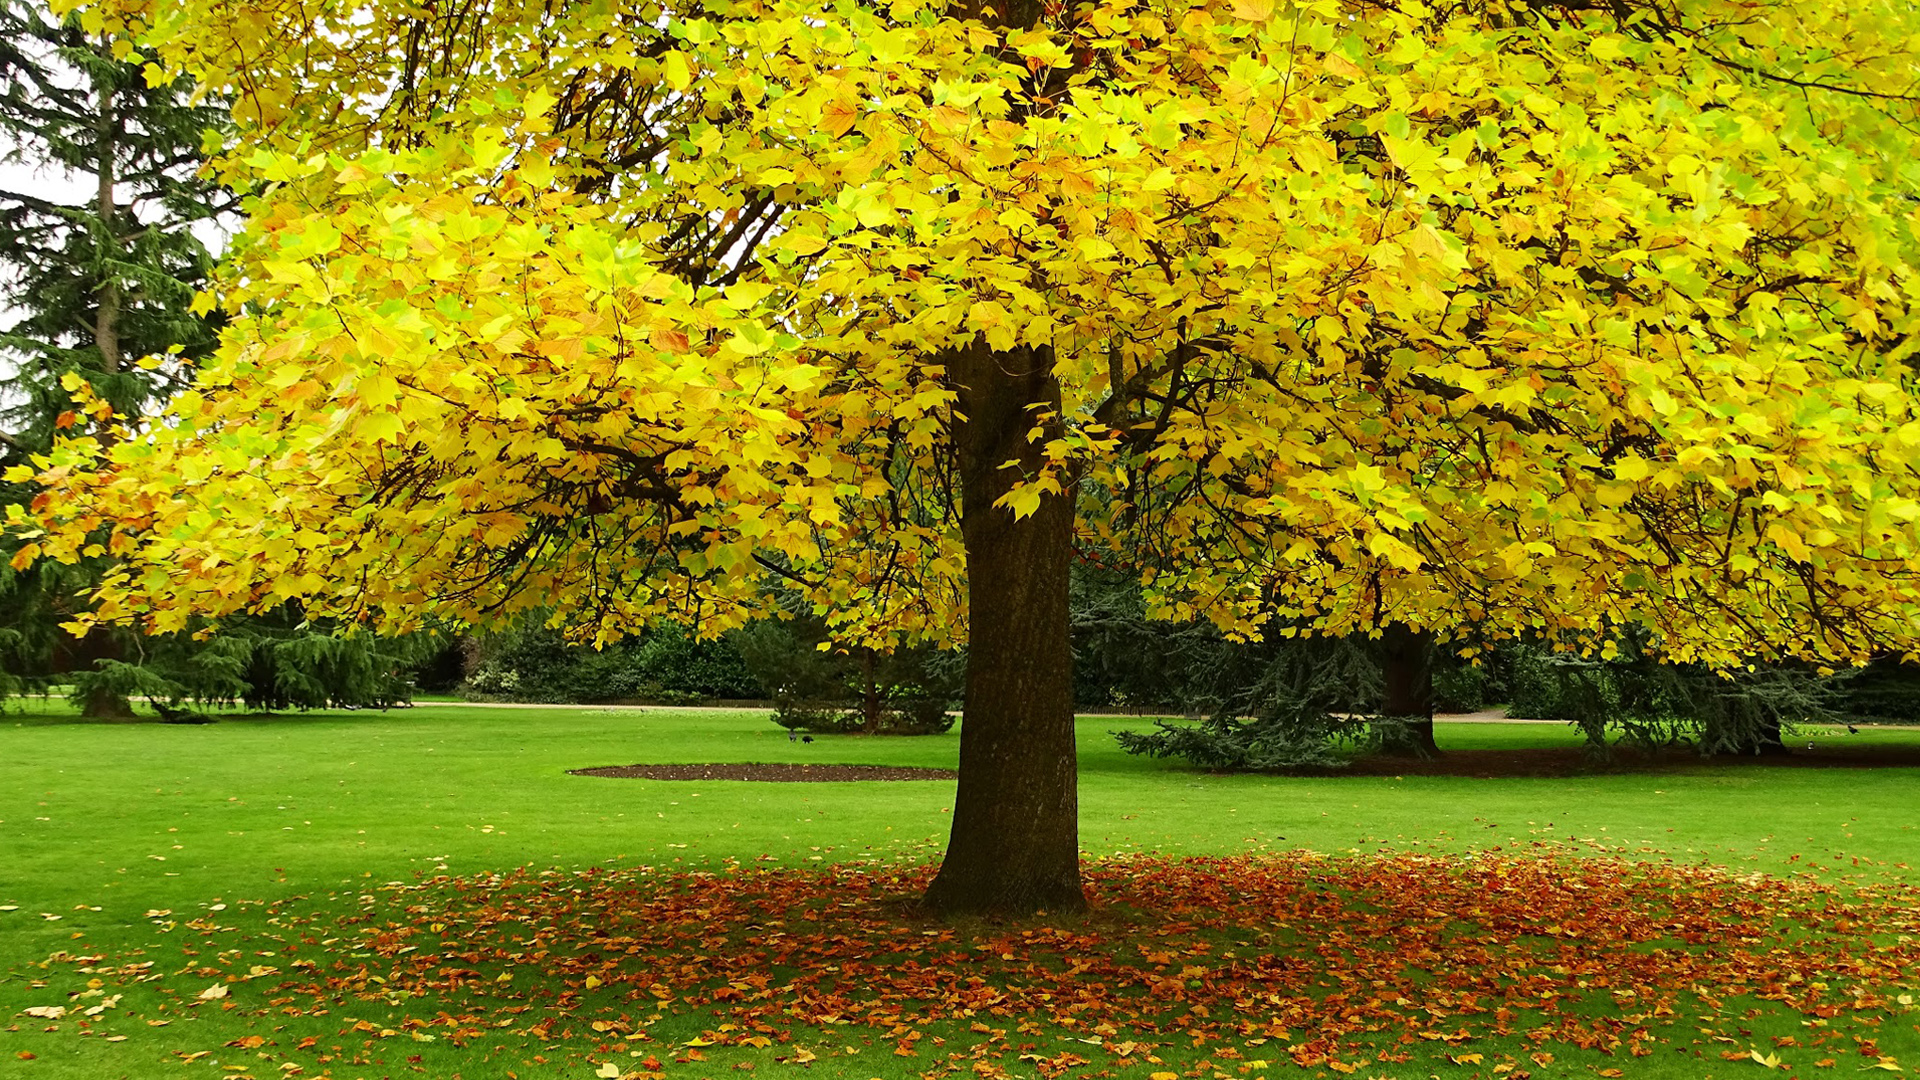 Autumn Love Hd Live Wallpaper Autumn Hd Wallpaper With Yellow Leaves Tree Hd